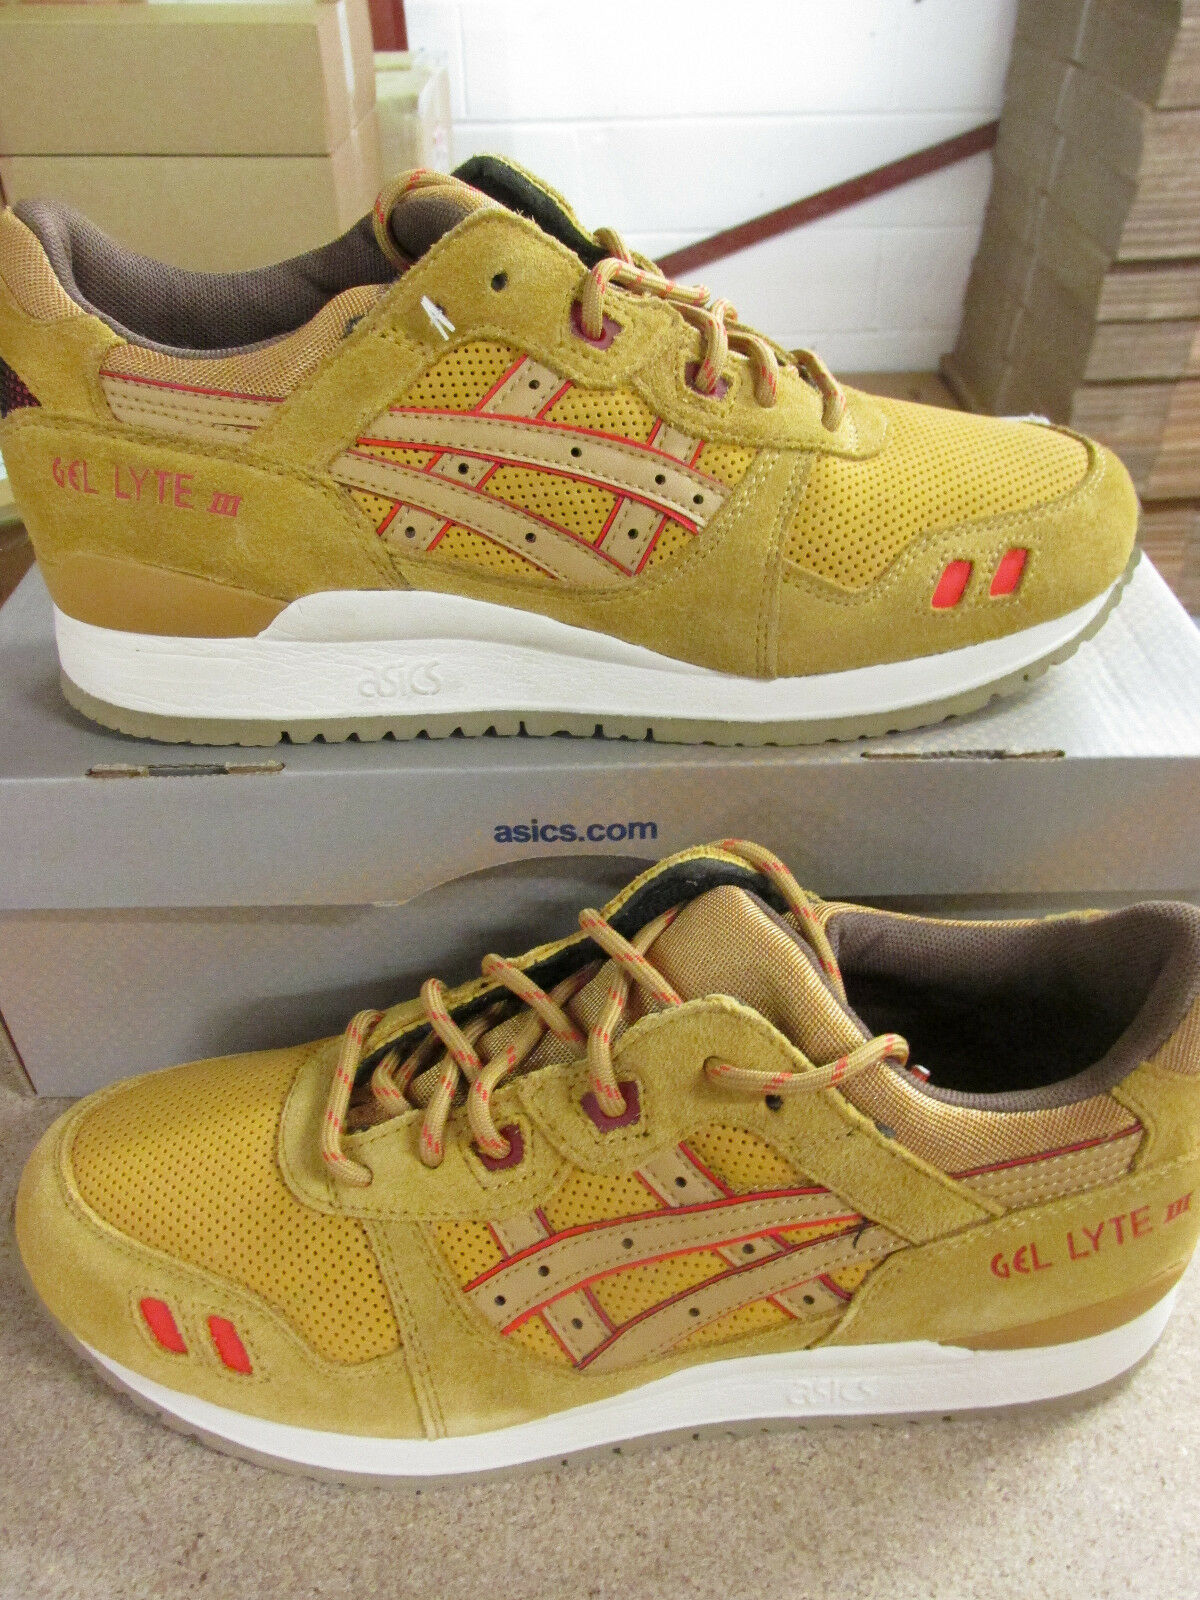 uk availability 6d44d 4270c Asics Gel-Lyte III Hommes 3 Hommes III Baskets H427L 7171 Chaussures  Baskets e3fbfd